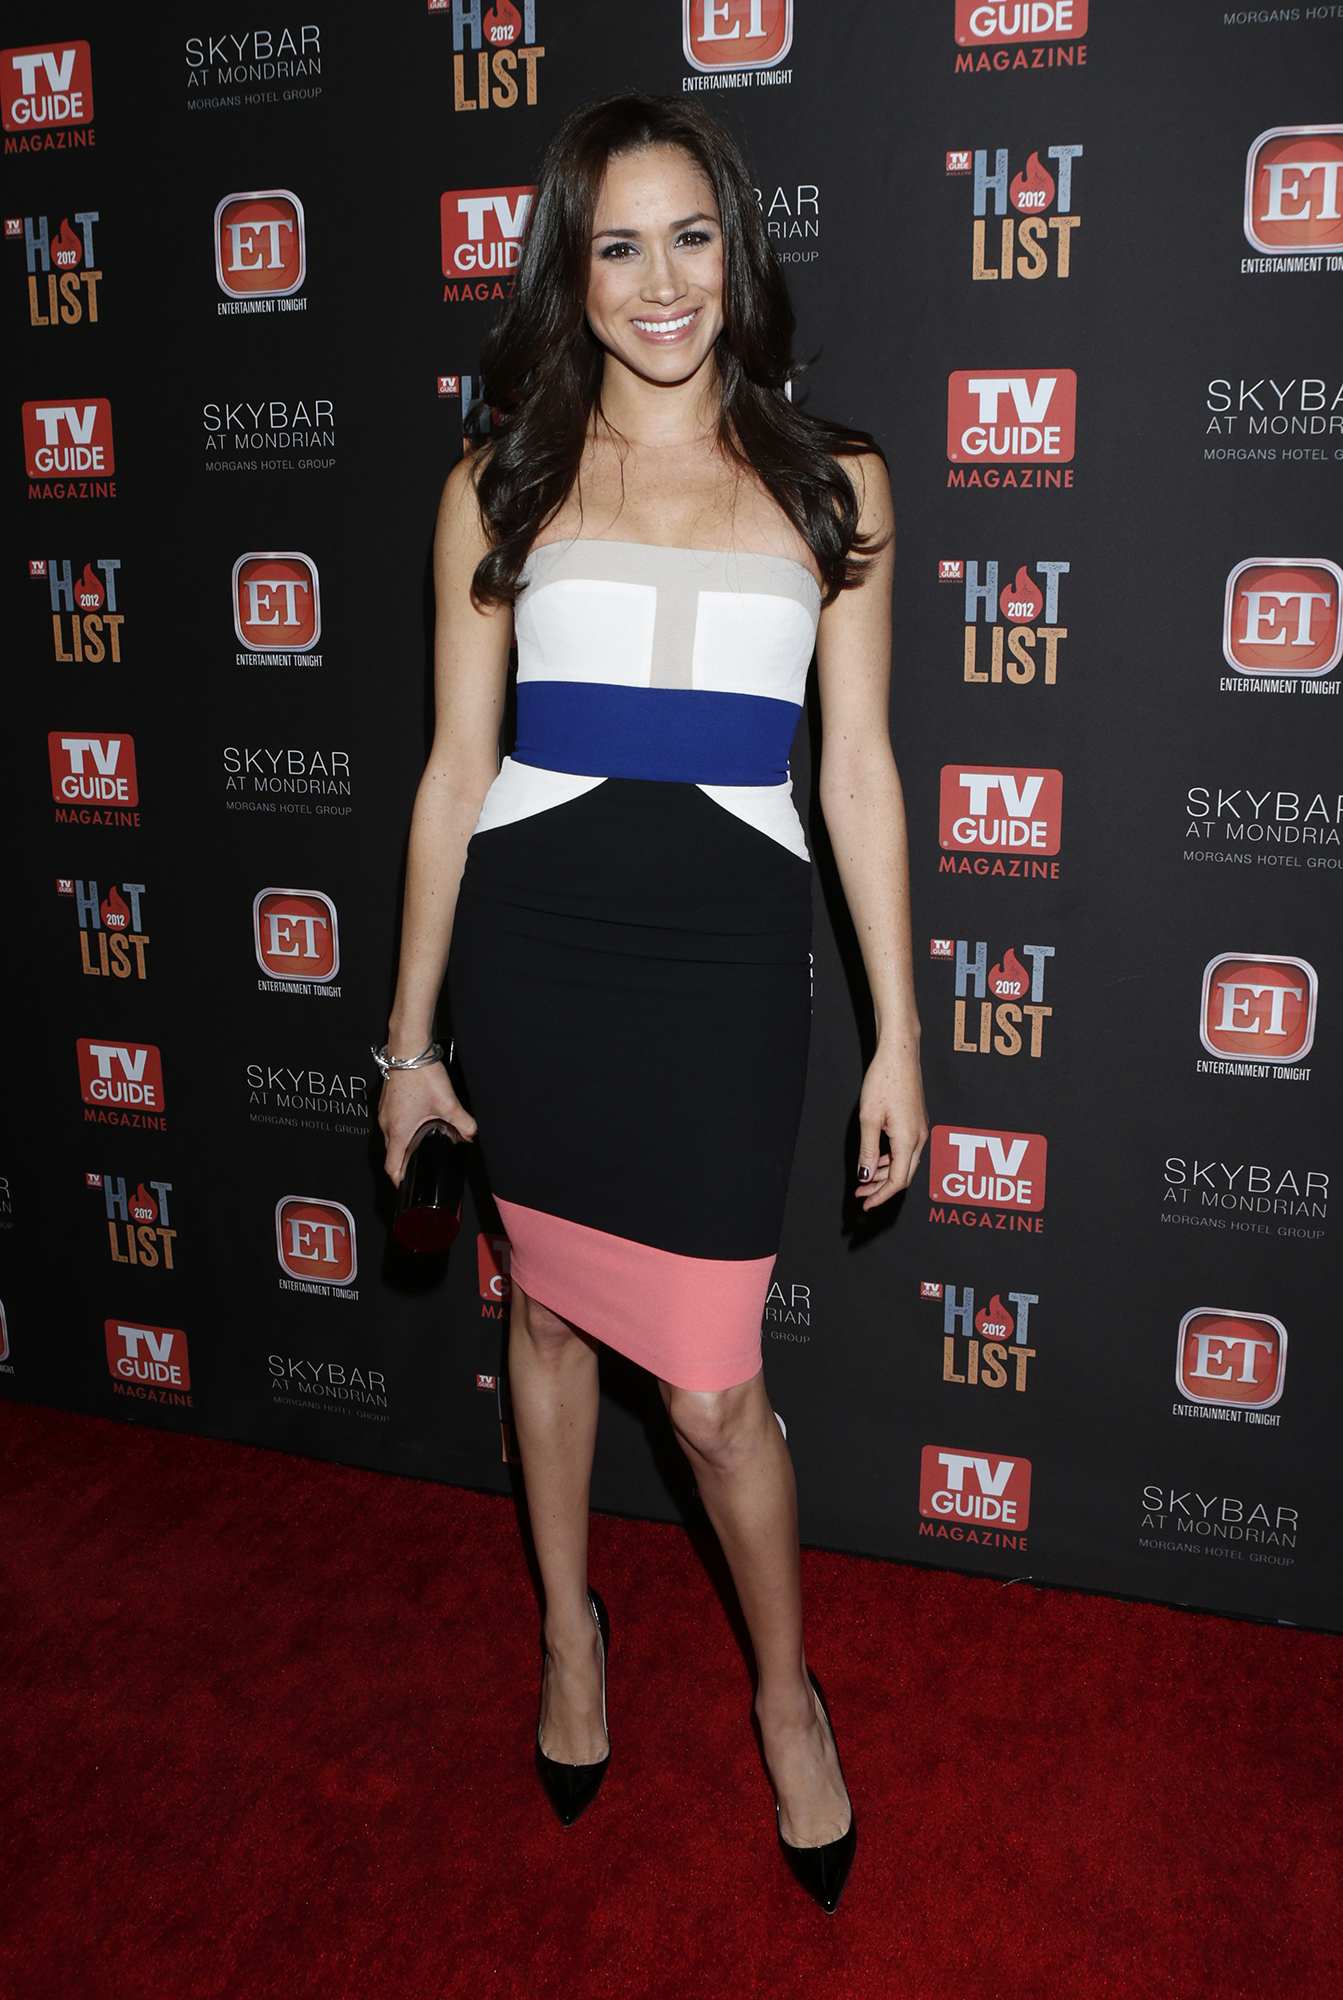 <div class='meta'><div class='origin-logo' data-origin='AP'></div><span class='caption-text' data-credit='Todd Williamson/Invision/AP'>Meghan Markle attends TV Guide Magazine's 2012 Hot List Party at Skybar at the Mondrian Hotel on November 12, 2012 in West Hollywood, California.</span></div>